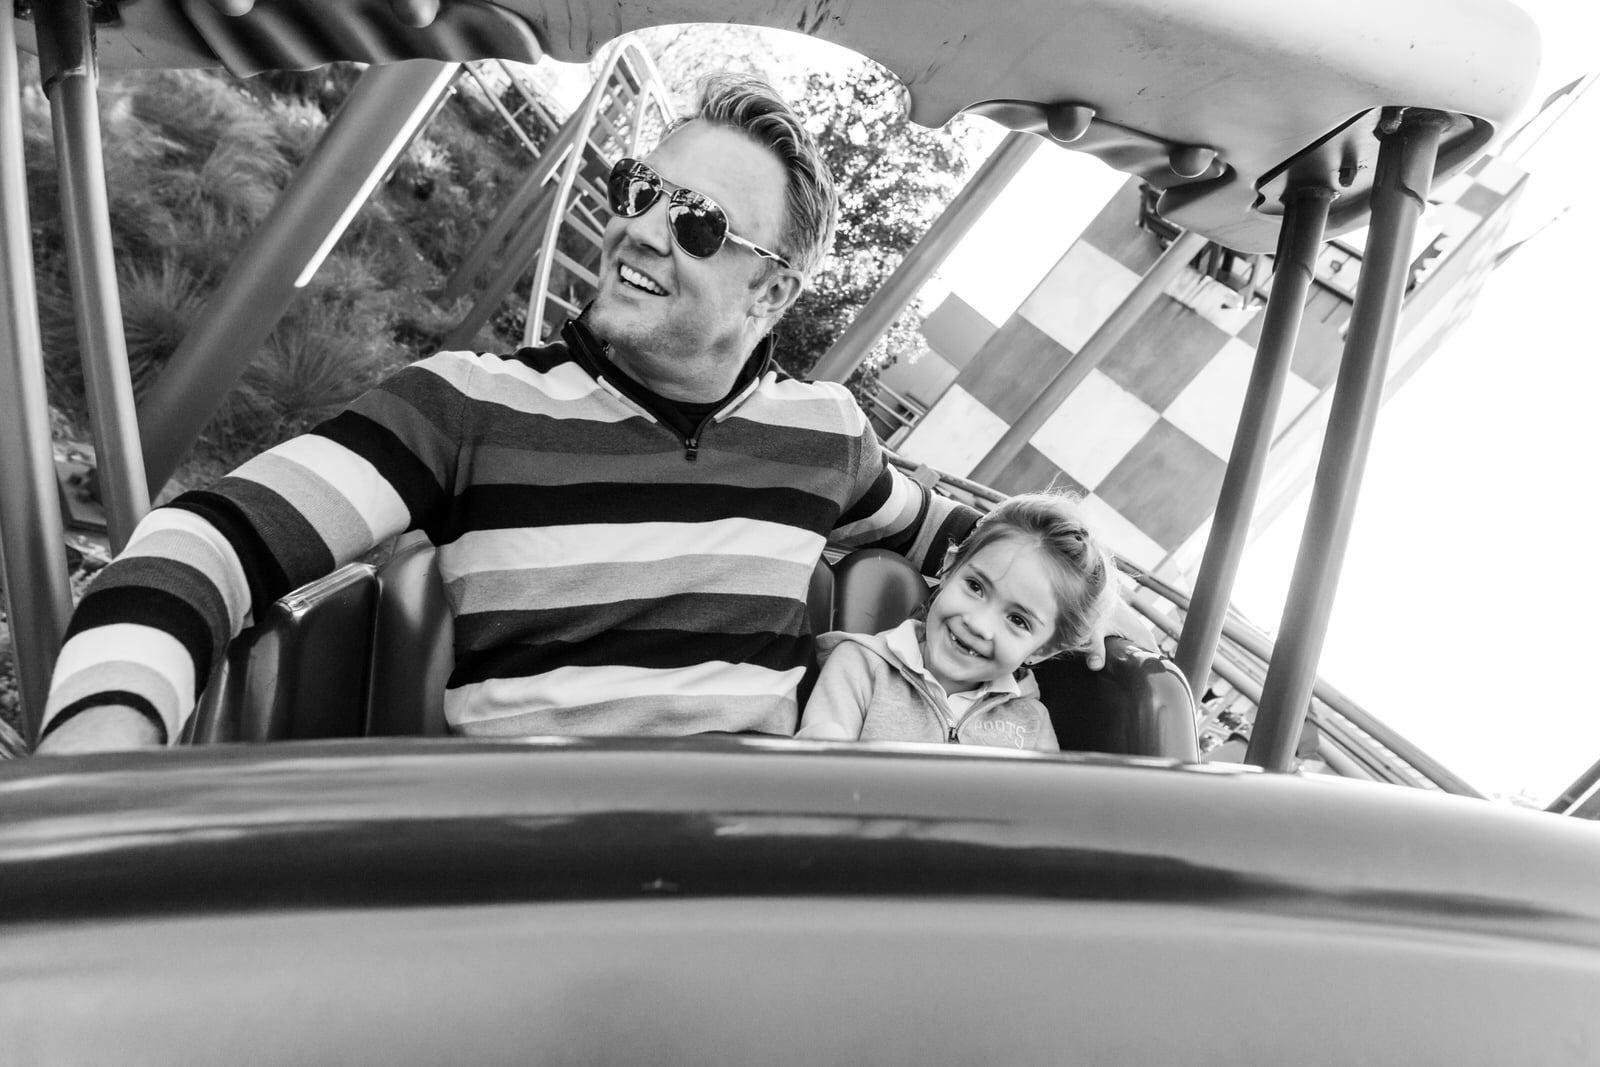 father and daughter ride Barnstormer